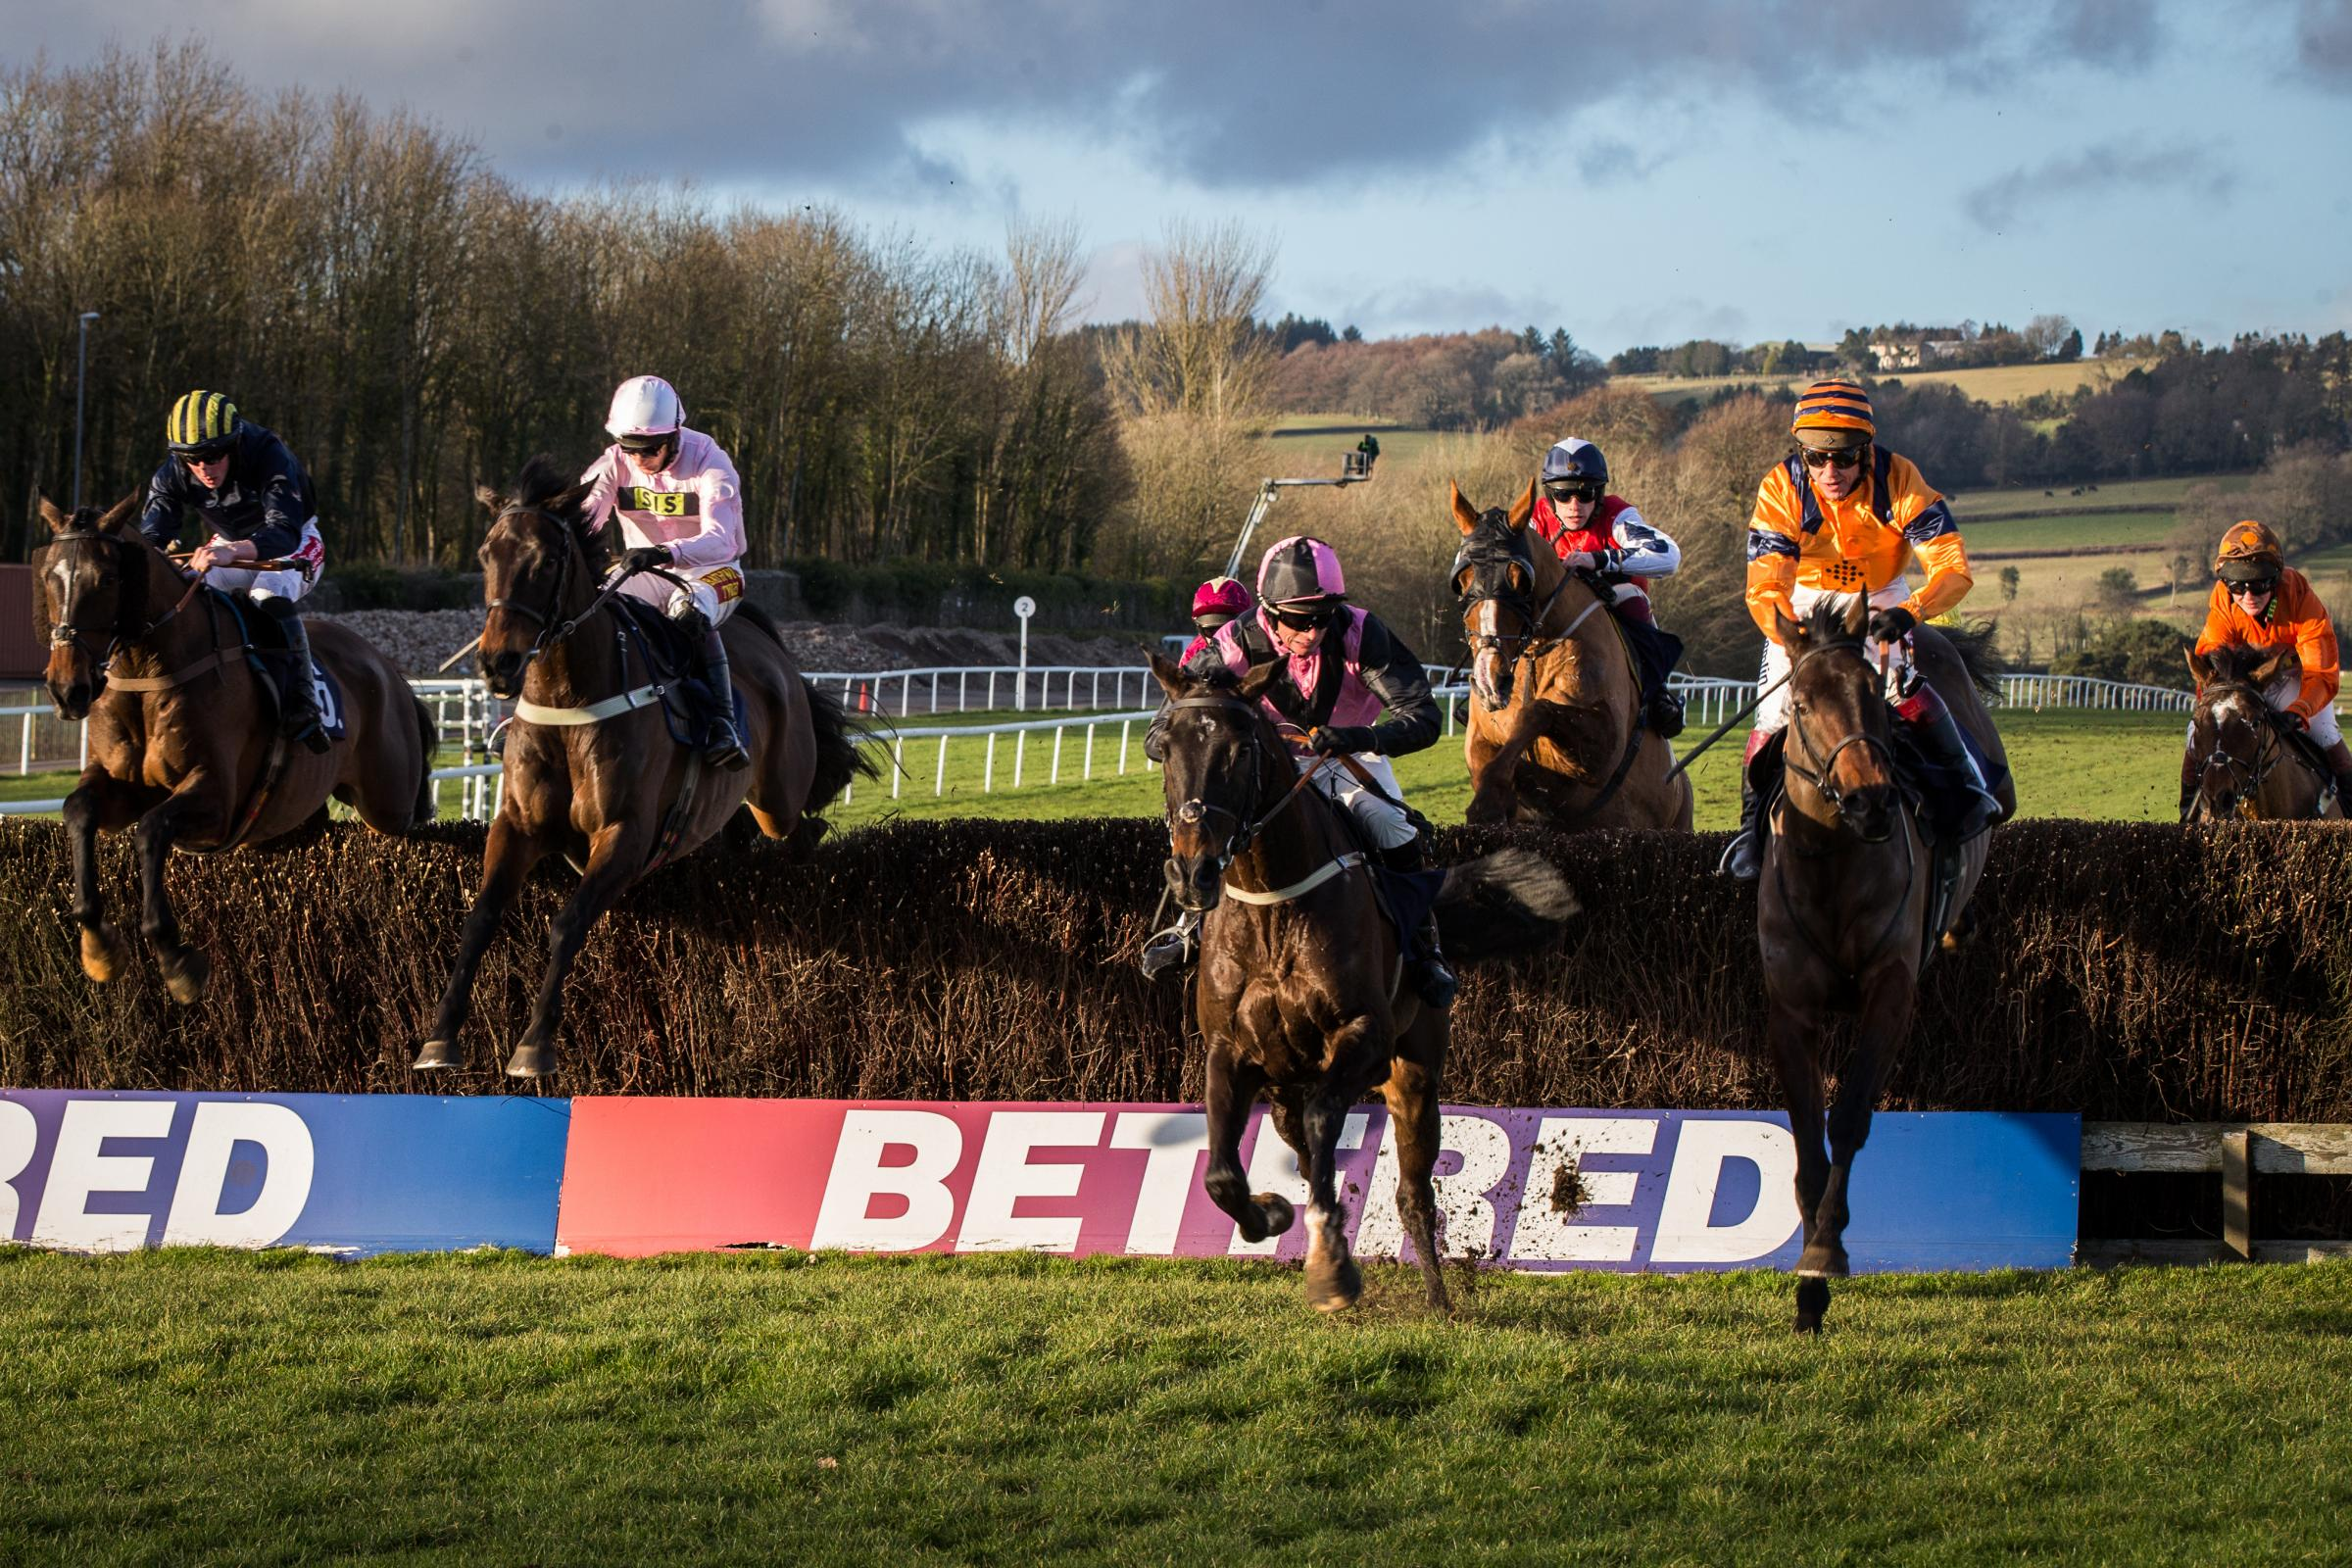 TOP RACING: Back To The Thatch (orange), seen here on the way to winning at Chepstow in January, is one of the entries in Saturday's Welsh National Trial. Paddy The Oscar, who is just ahead of him, eventually finished third